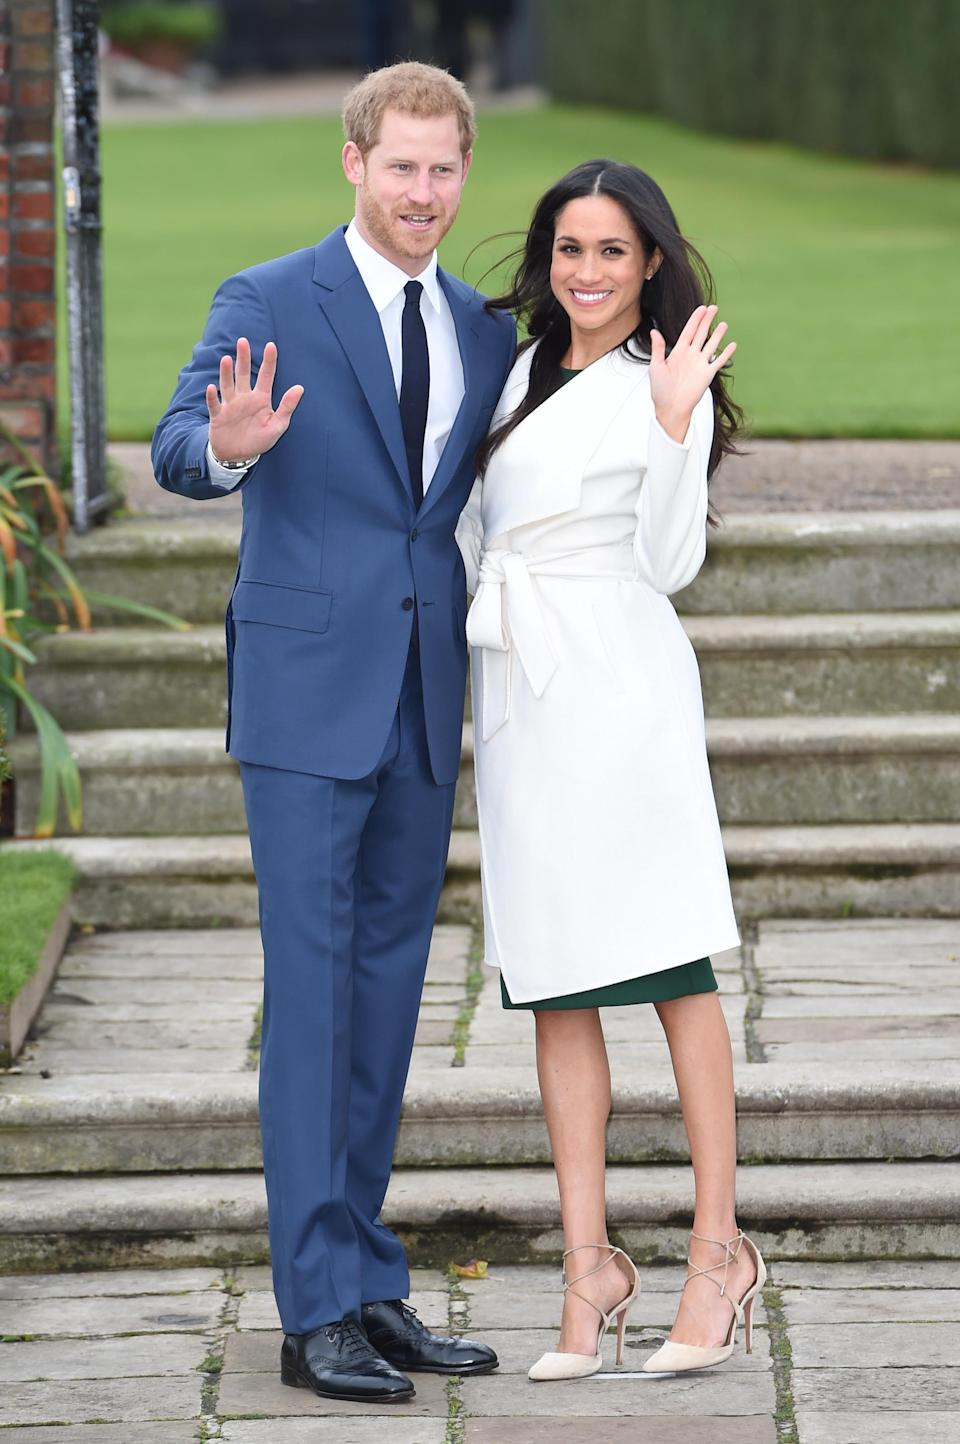 The royal couple will take part in a broadcast interview later this evening [Photo: Getty]